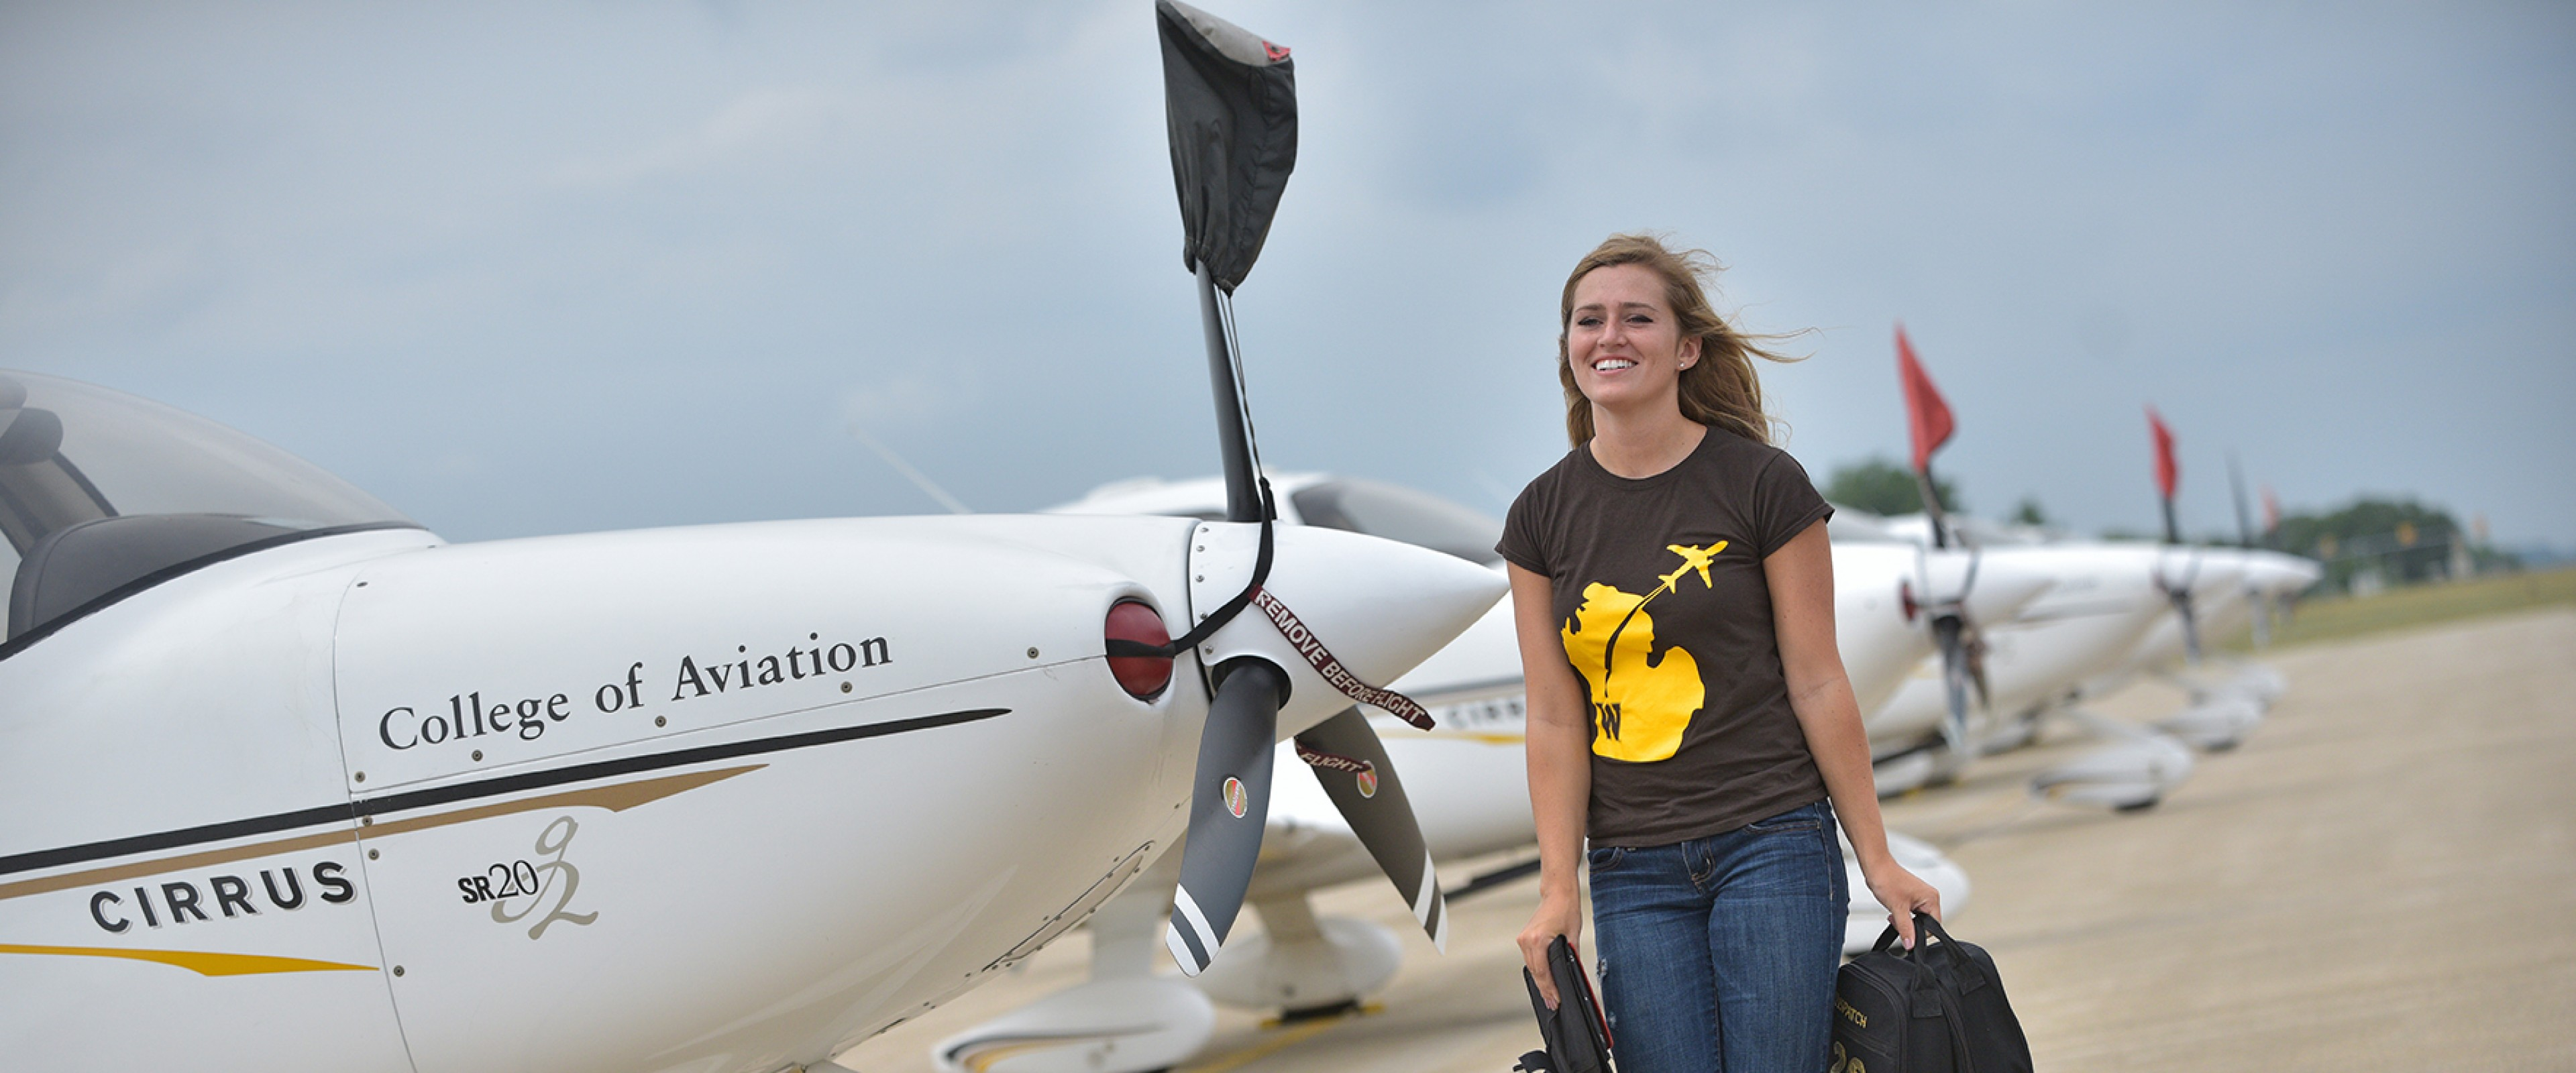 A WMU student pilot walking amongst parked airplanes